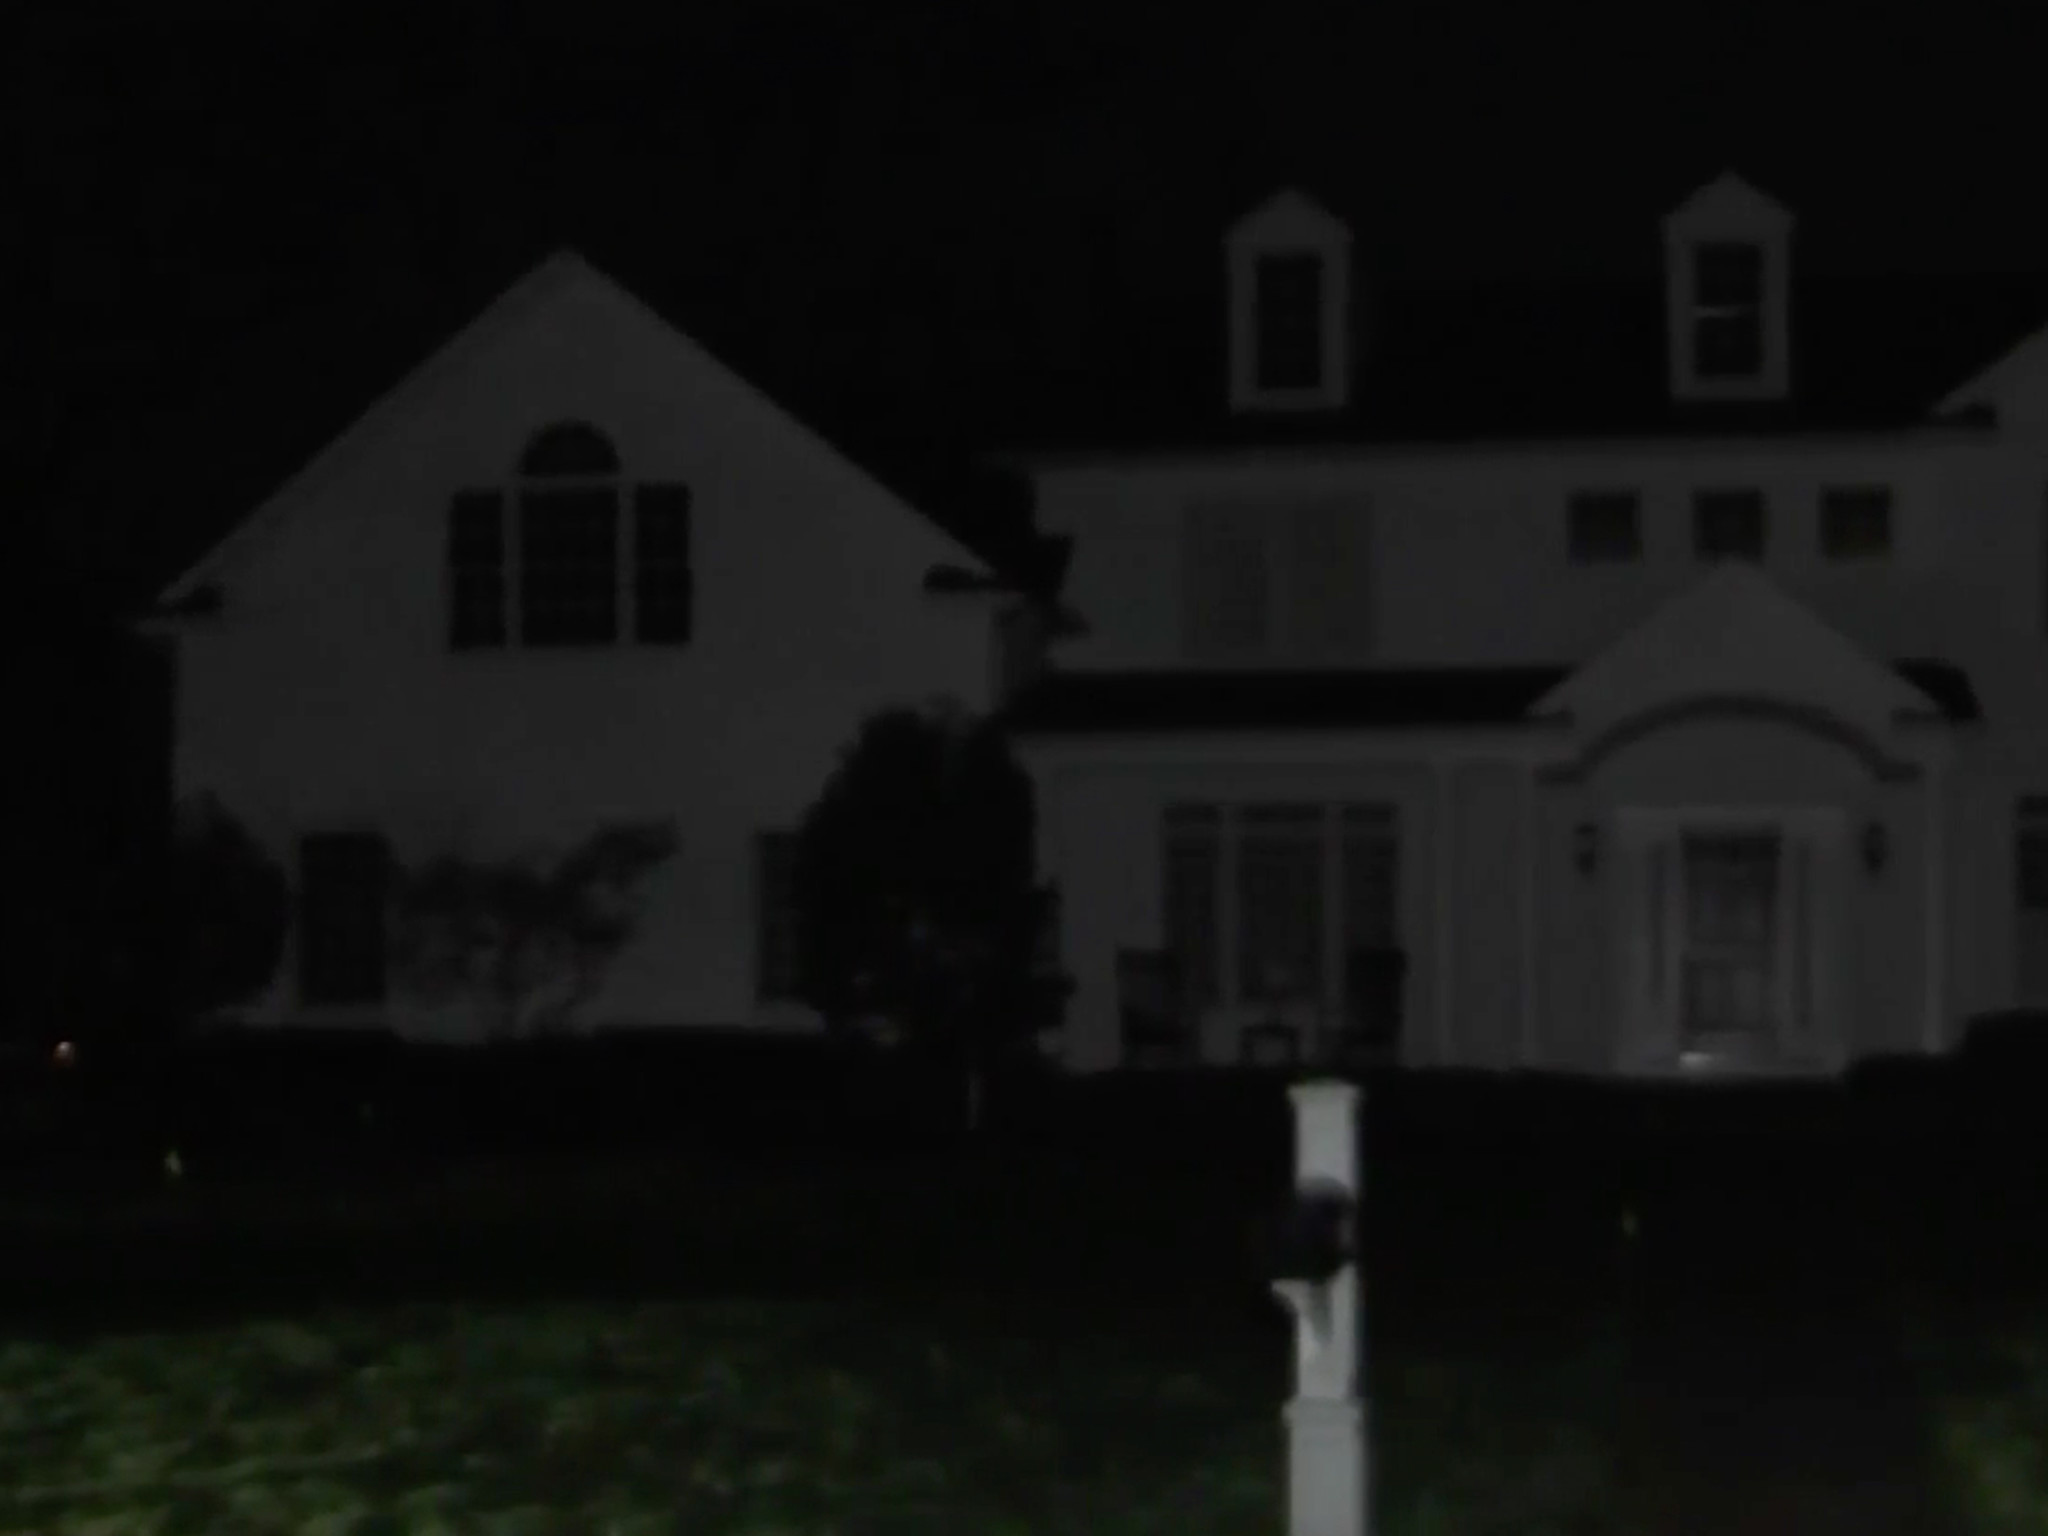 Homeowner charged over Pink Floyd performance on front lawn in New Jersey: authorities